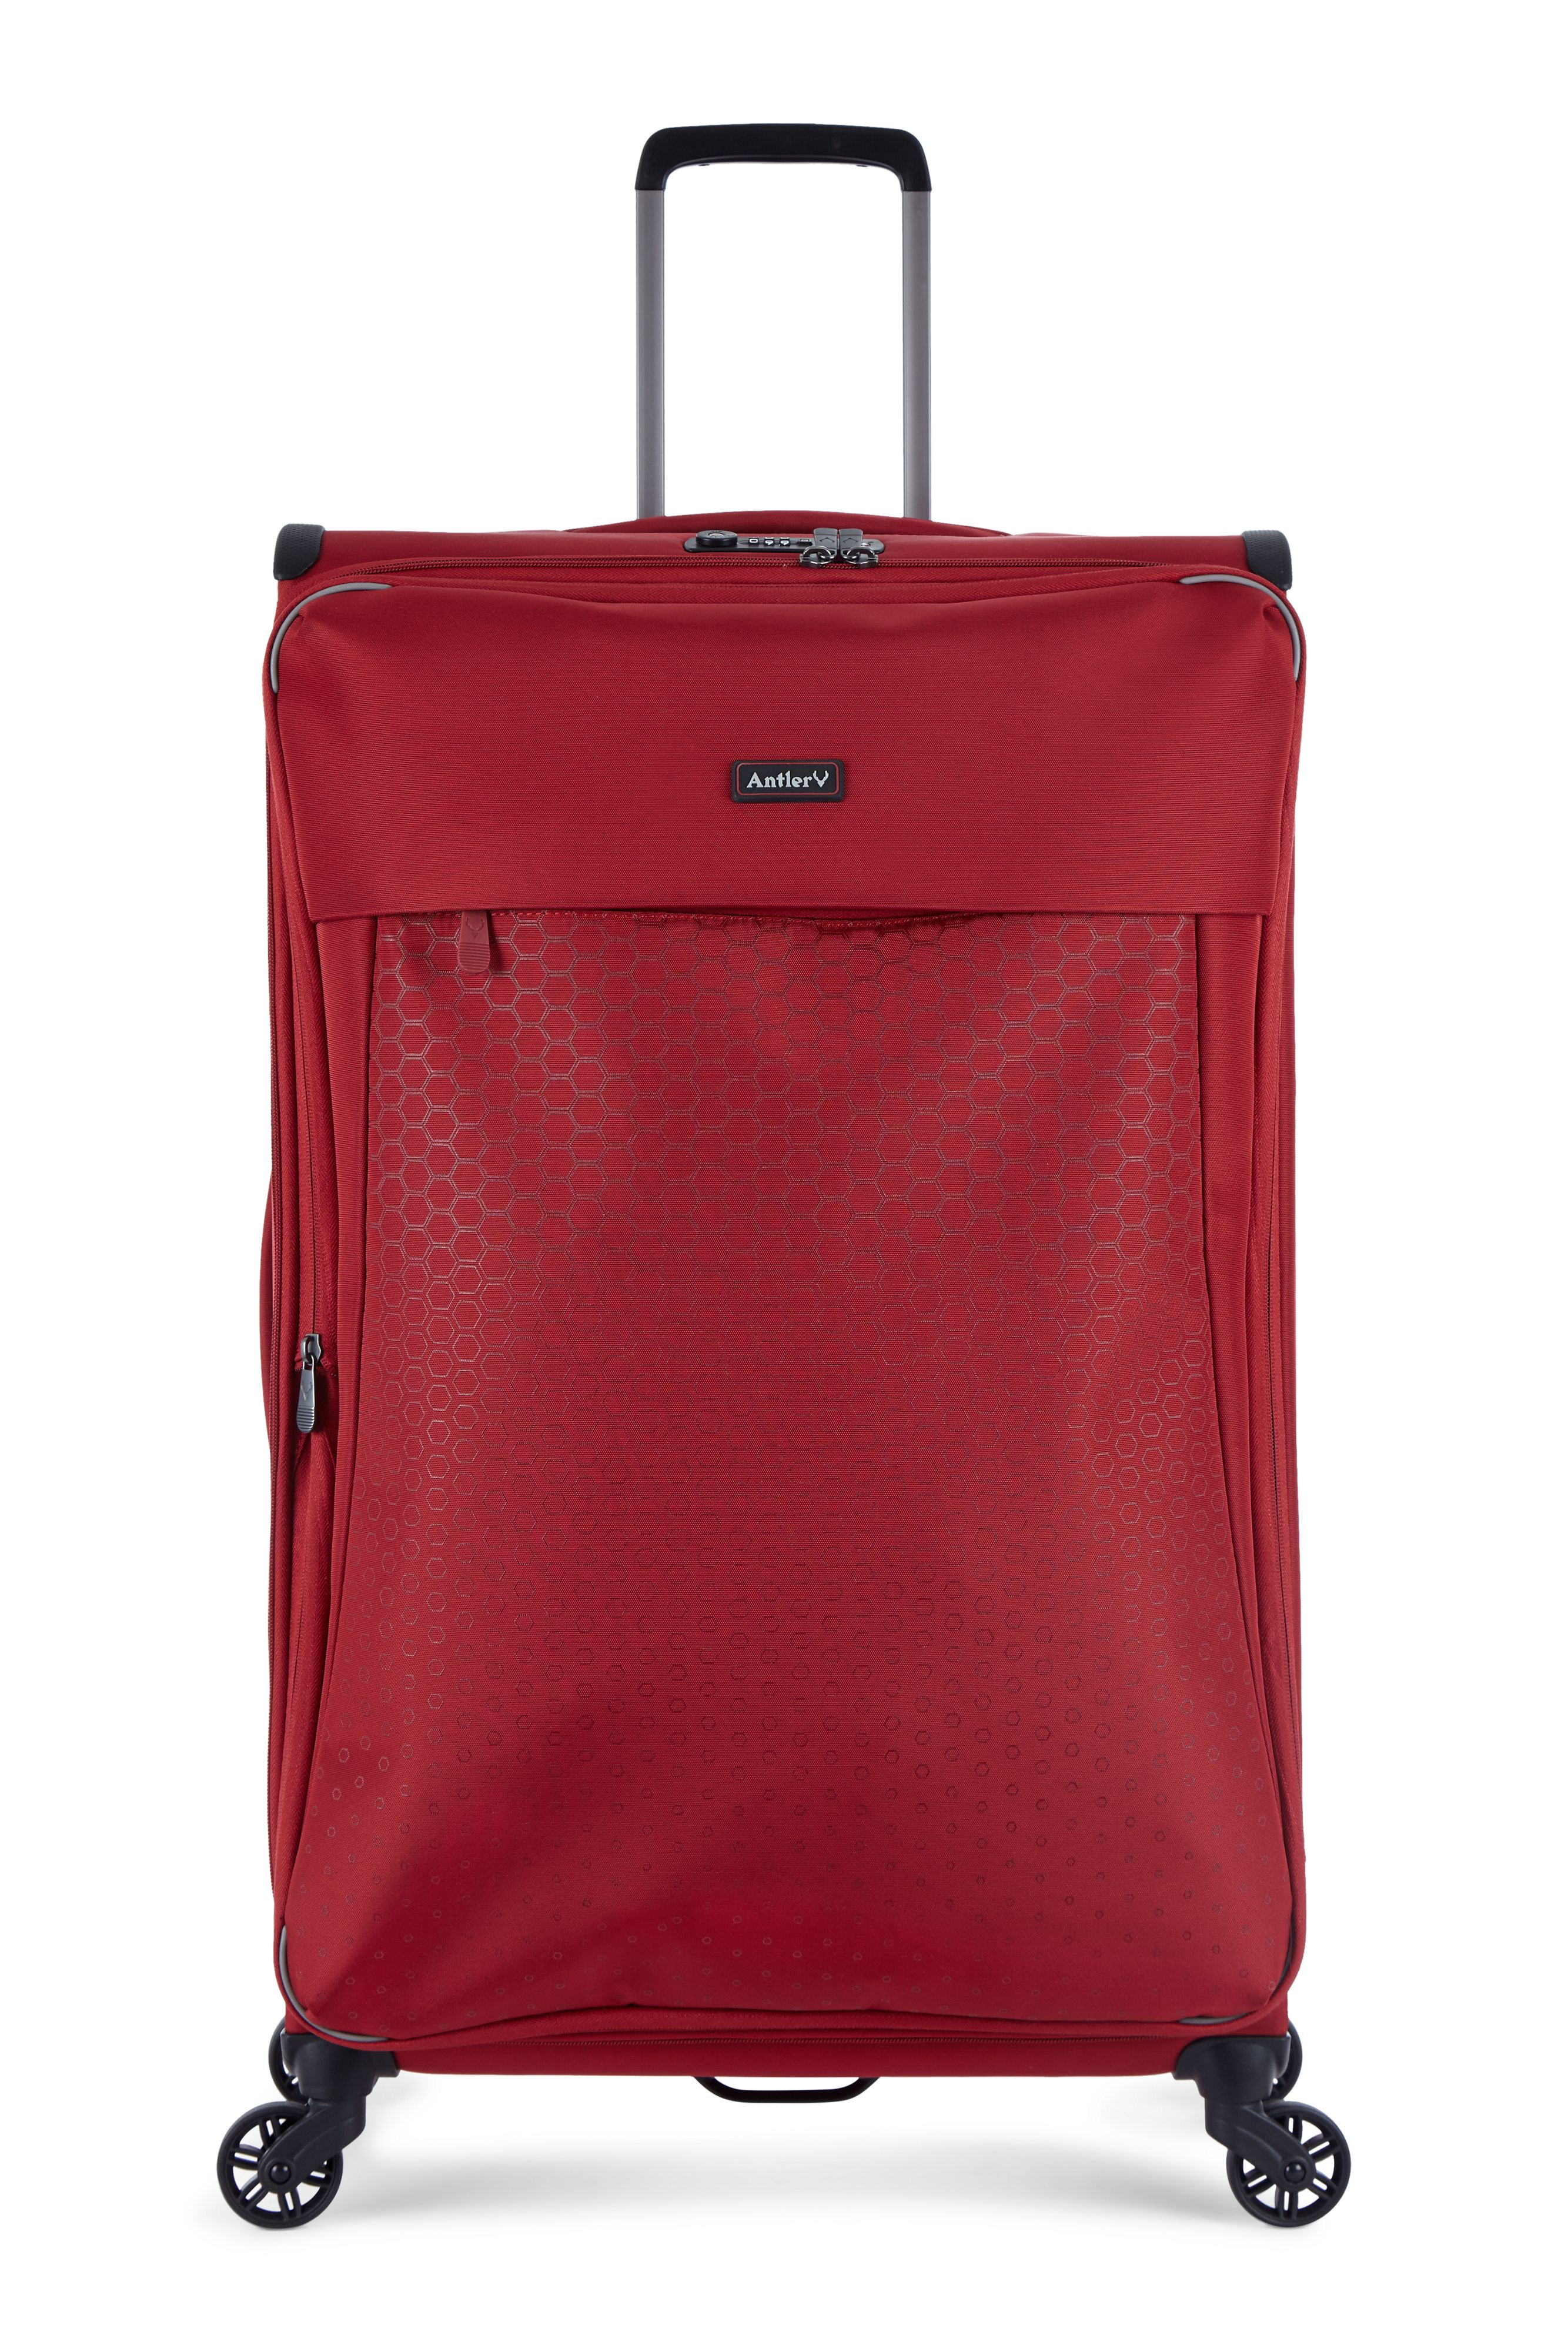 Antler OXYGEN RED 4 WHEEL SOFT LARGE 75CM SUITCASE, Red